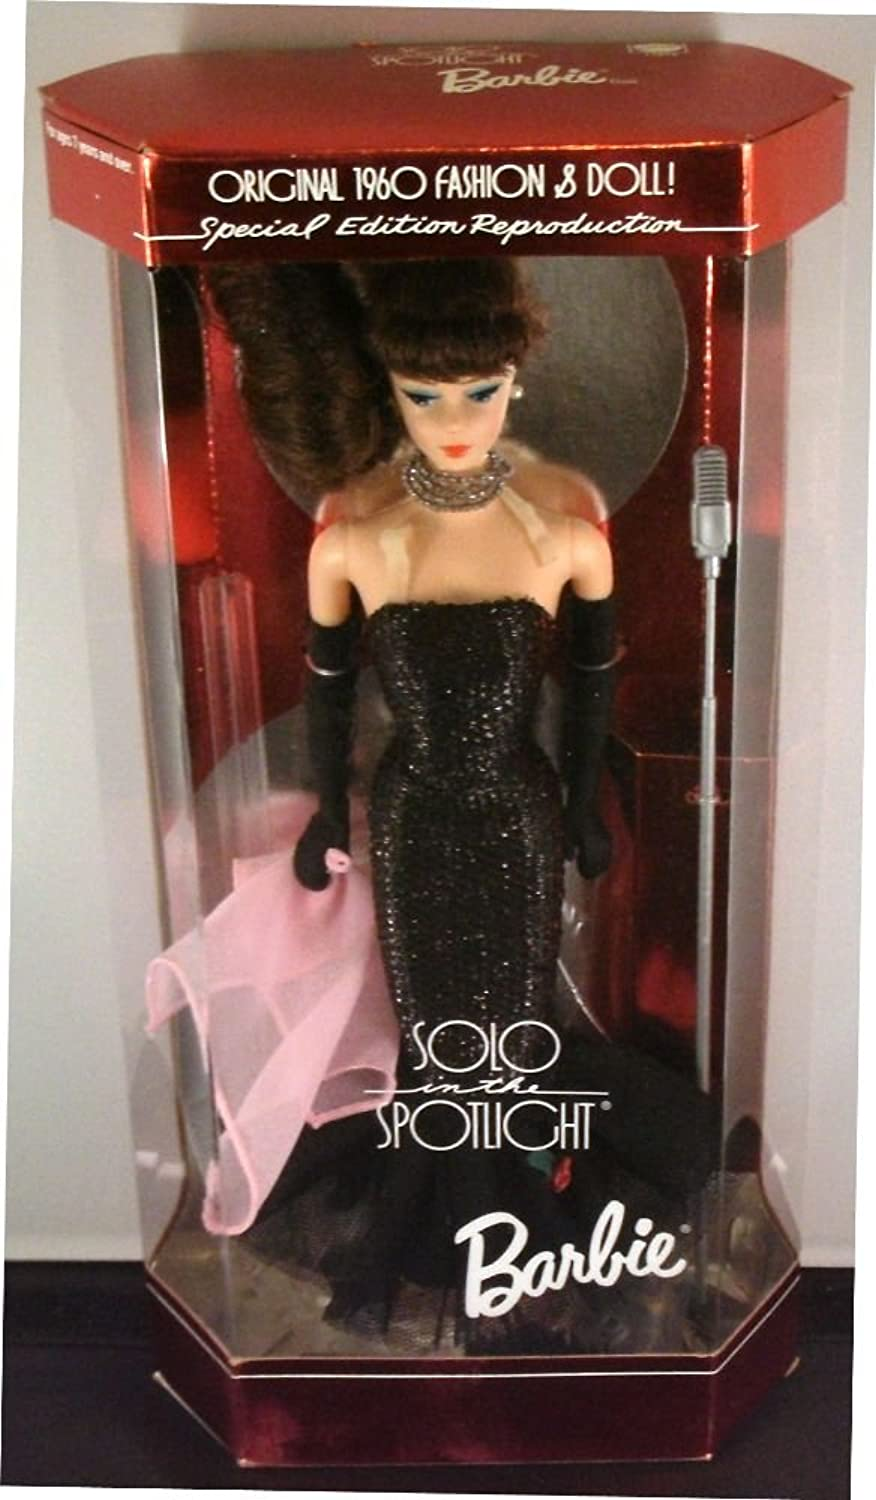 Mattel Barbie Solo In The Spotlight Special Edition Reproduction